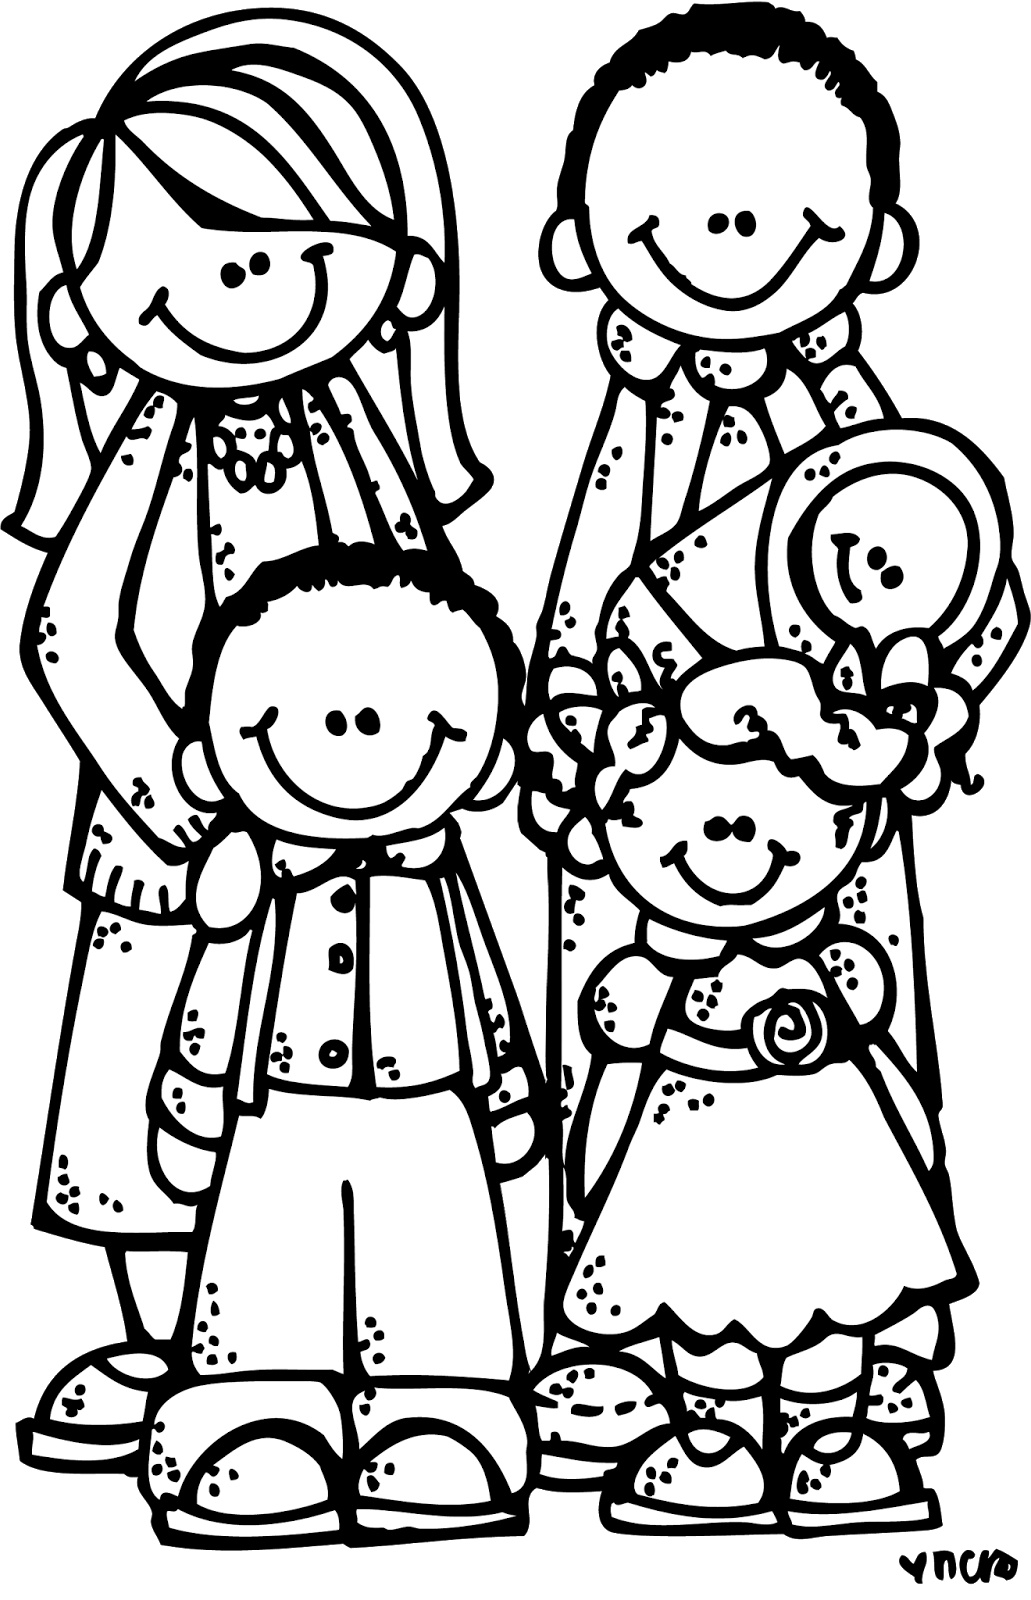 Lds family clipart clipart images gallery for free download.